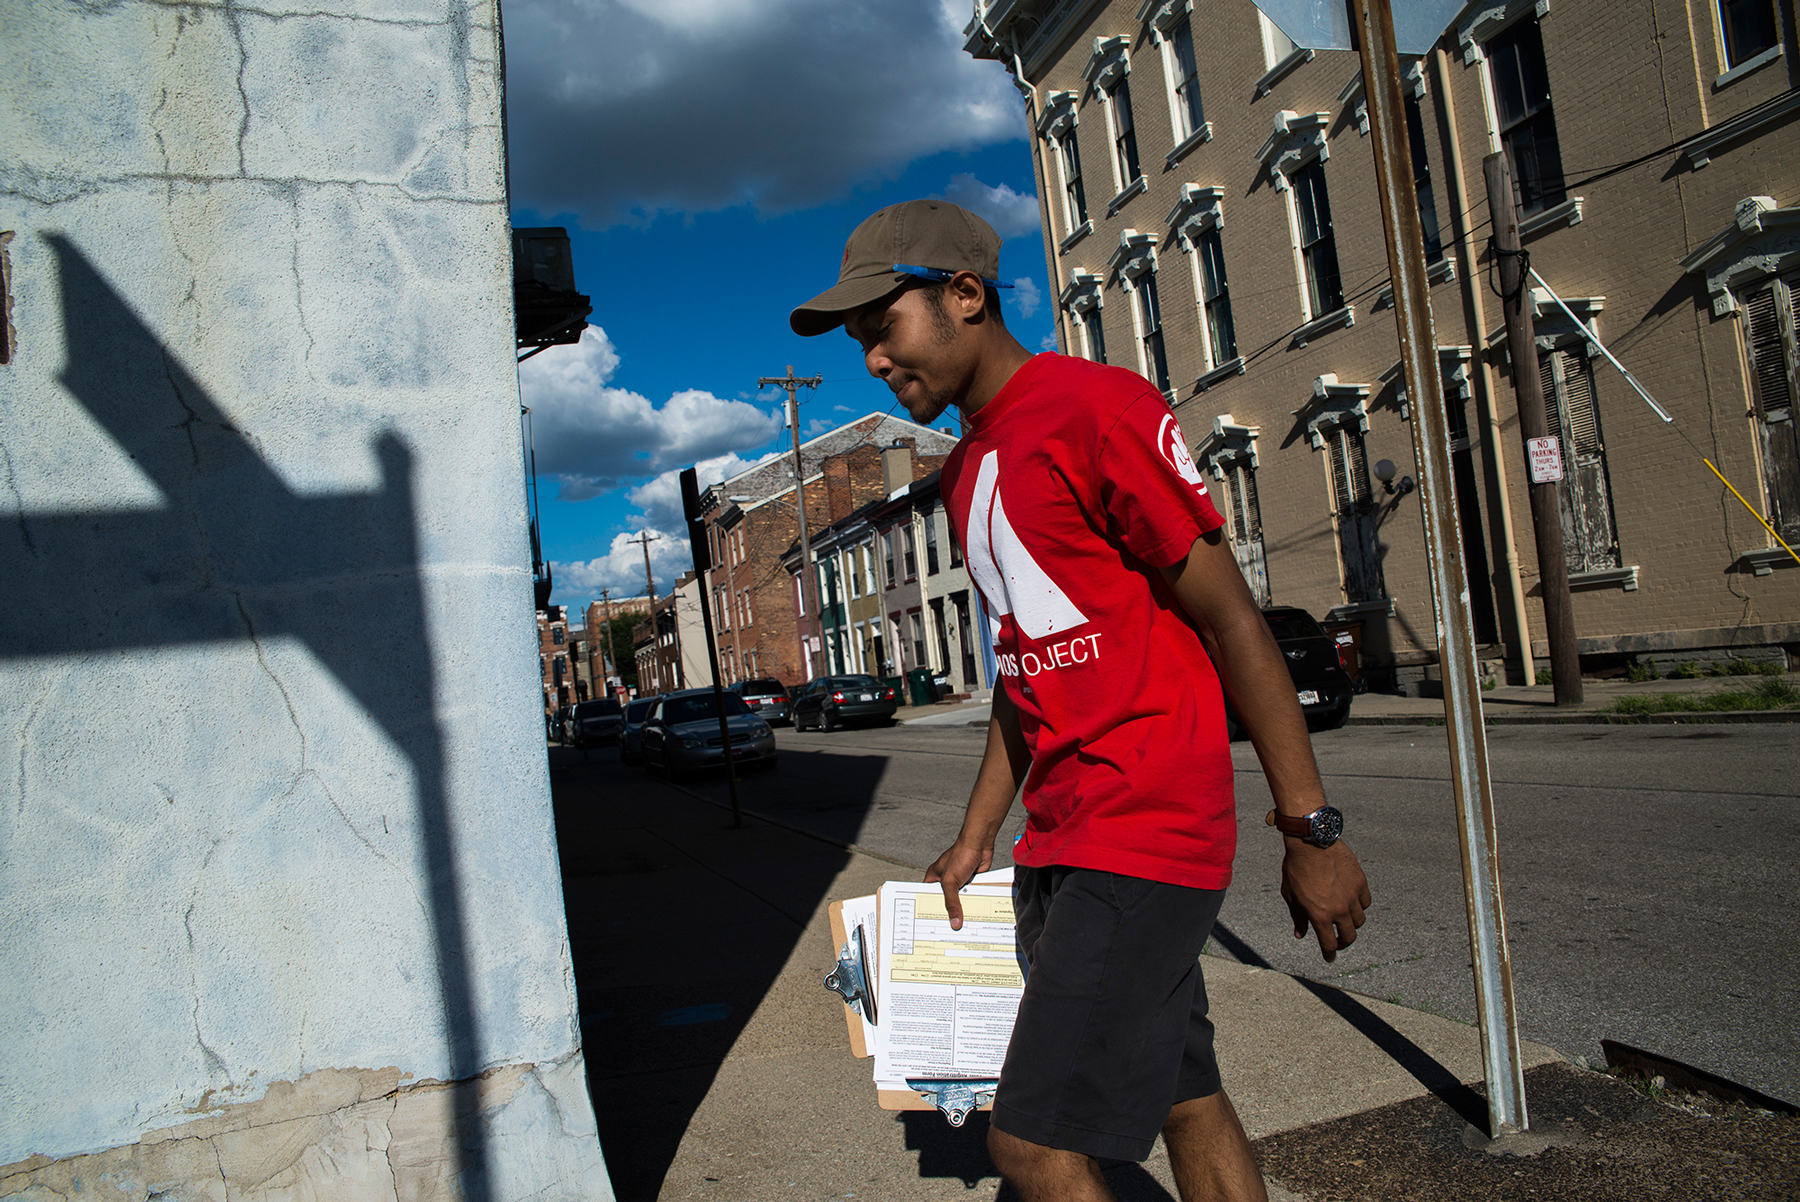 Dallas Stokes, a volunteer for the AMOS Project, a nonprofit social justice organization in Cincinnati, registers people to vote. Ohio is one of  several states where politicians have claimed voter fraud is a problem. (Roman Knertser/News21)